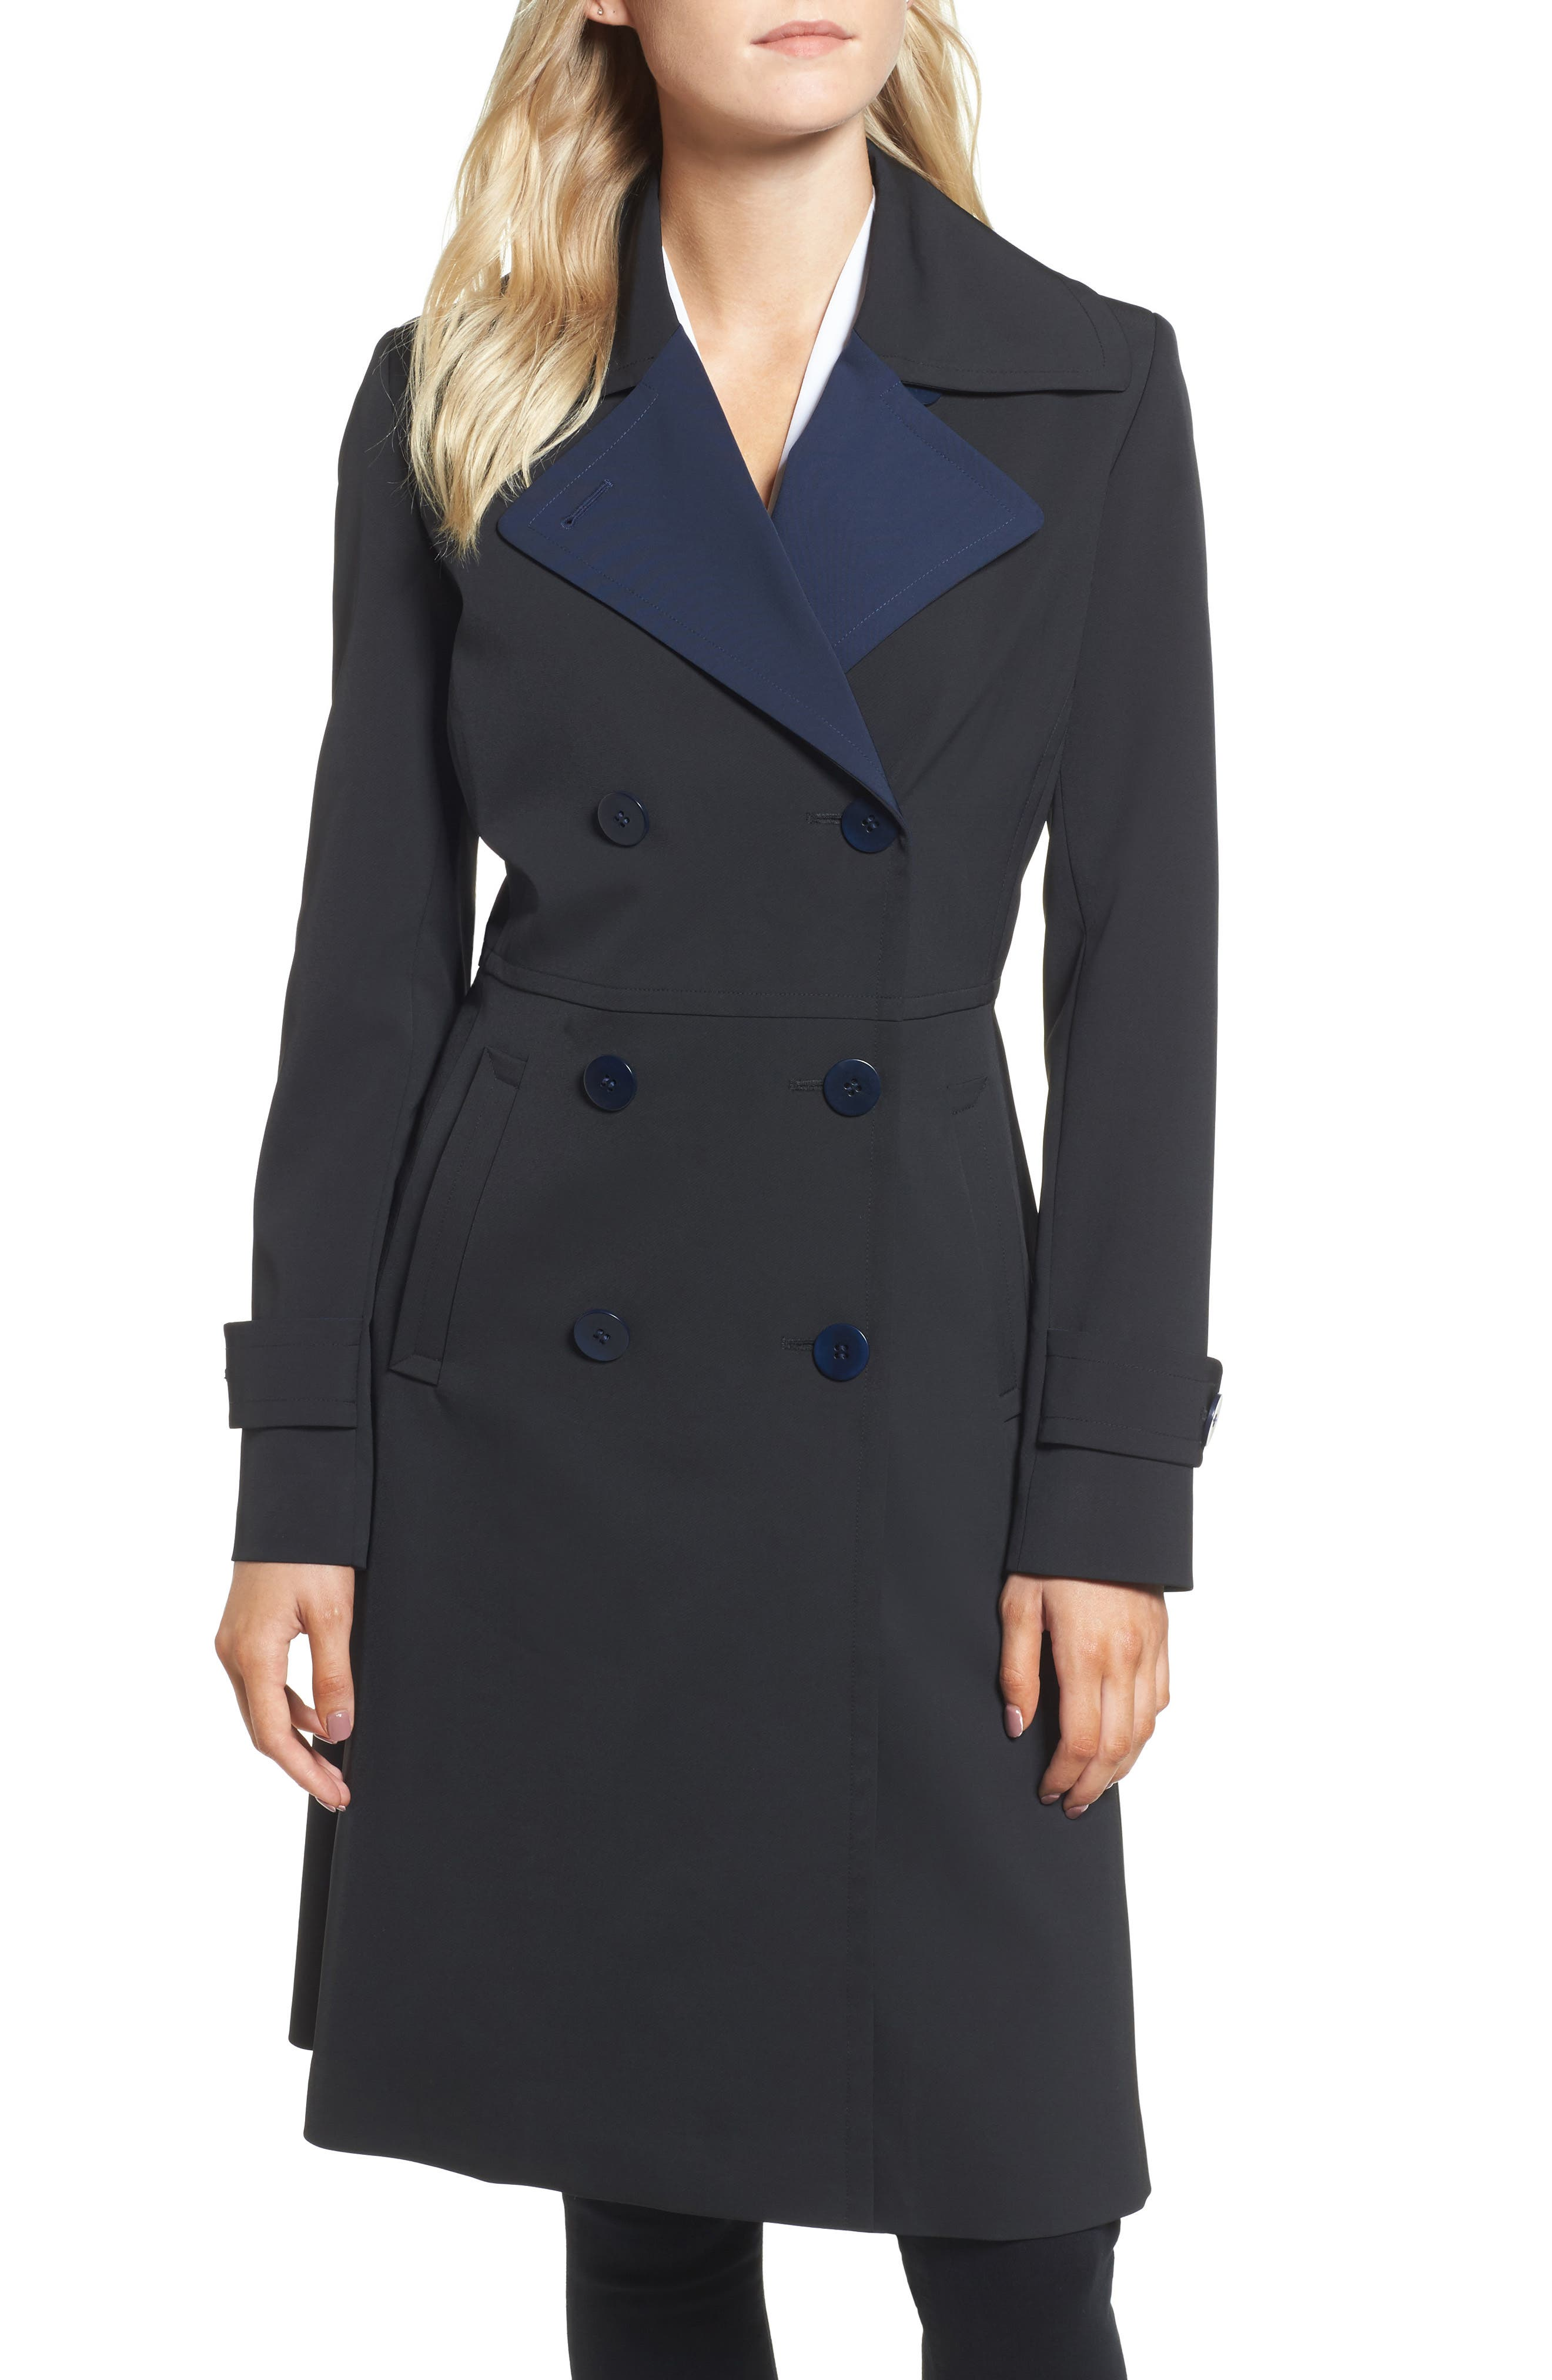 Alternate Image 1 Selected - Trina Turk Isabella Two-Tone Double Breasted Trench Raincoat